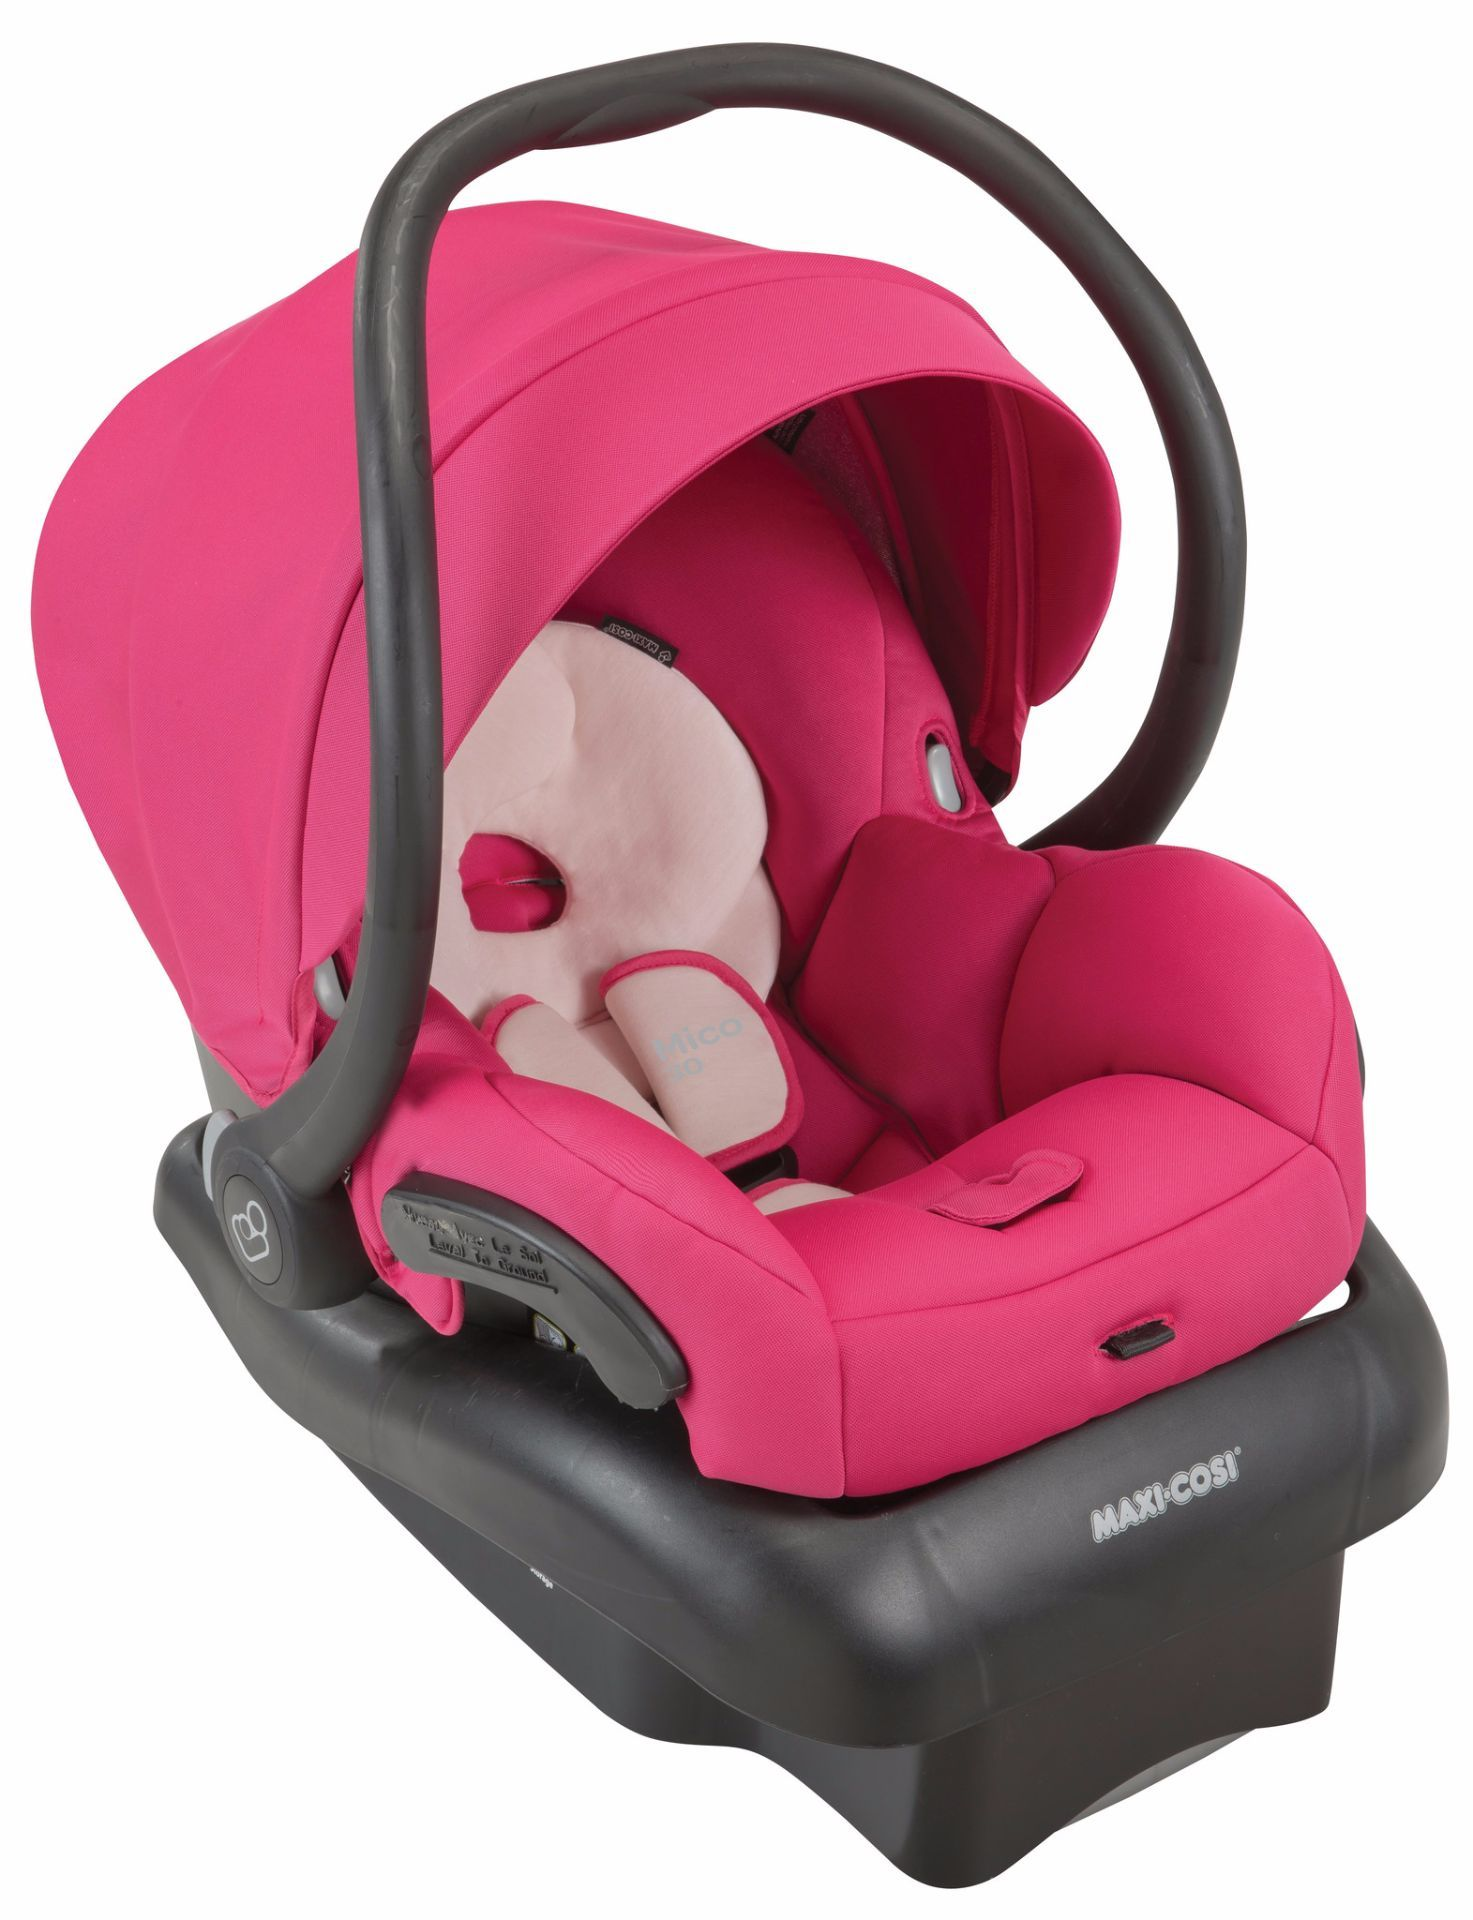 Maxi-Cosi Mico 30 Infant Car Seat- Bright Rose